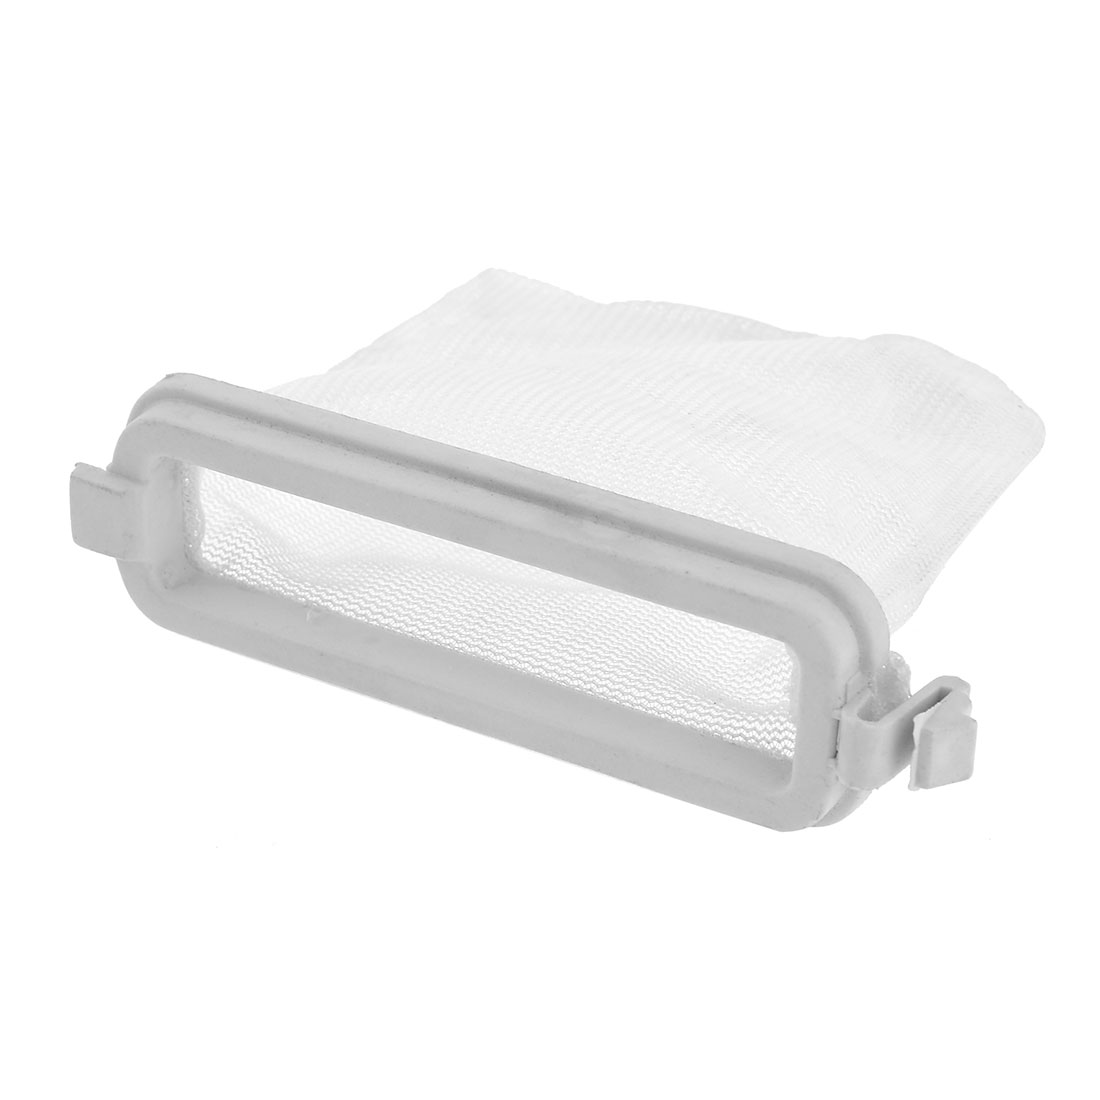 "Washing Machine Laundry Repairing Part Filter Bag White 3.9"" x 2.8"""